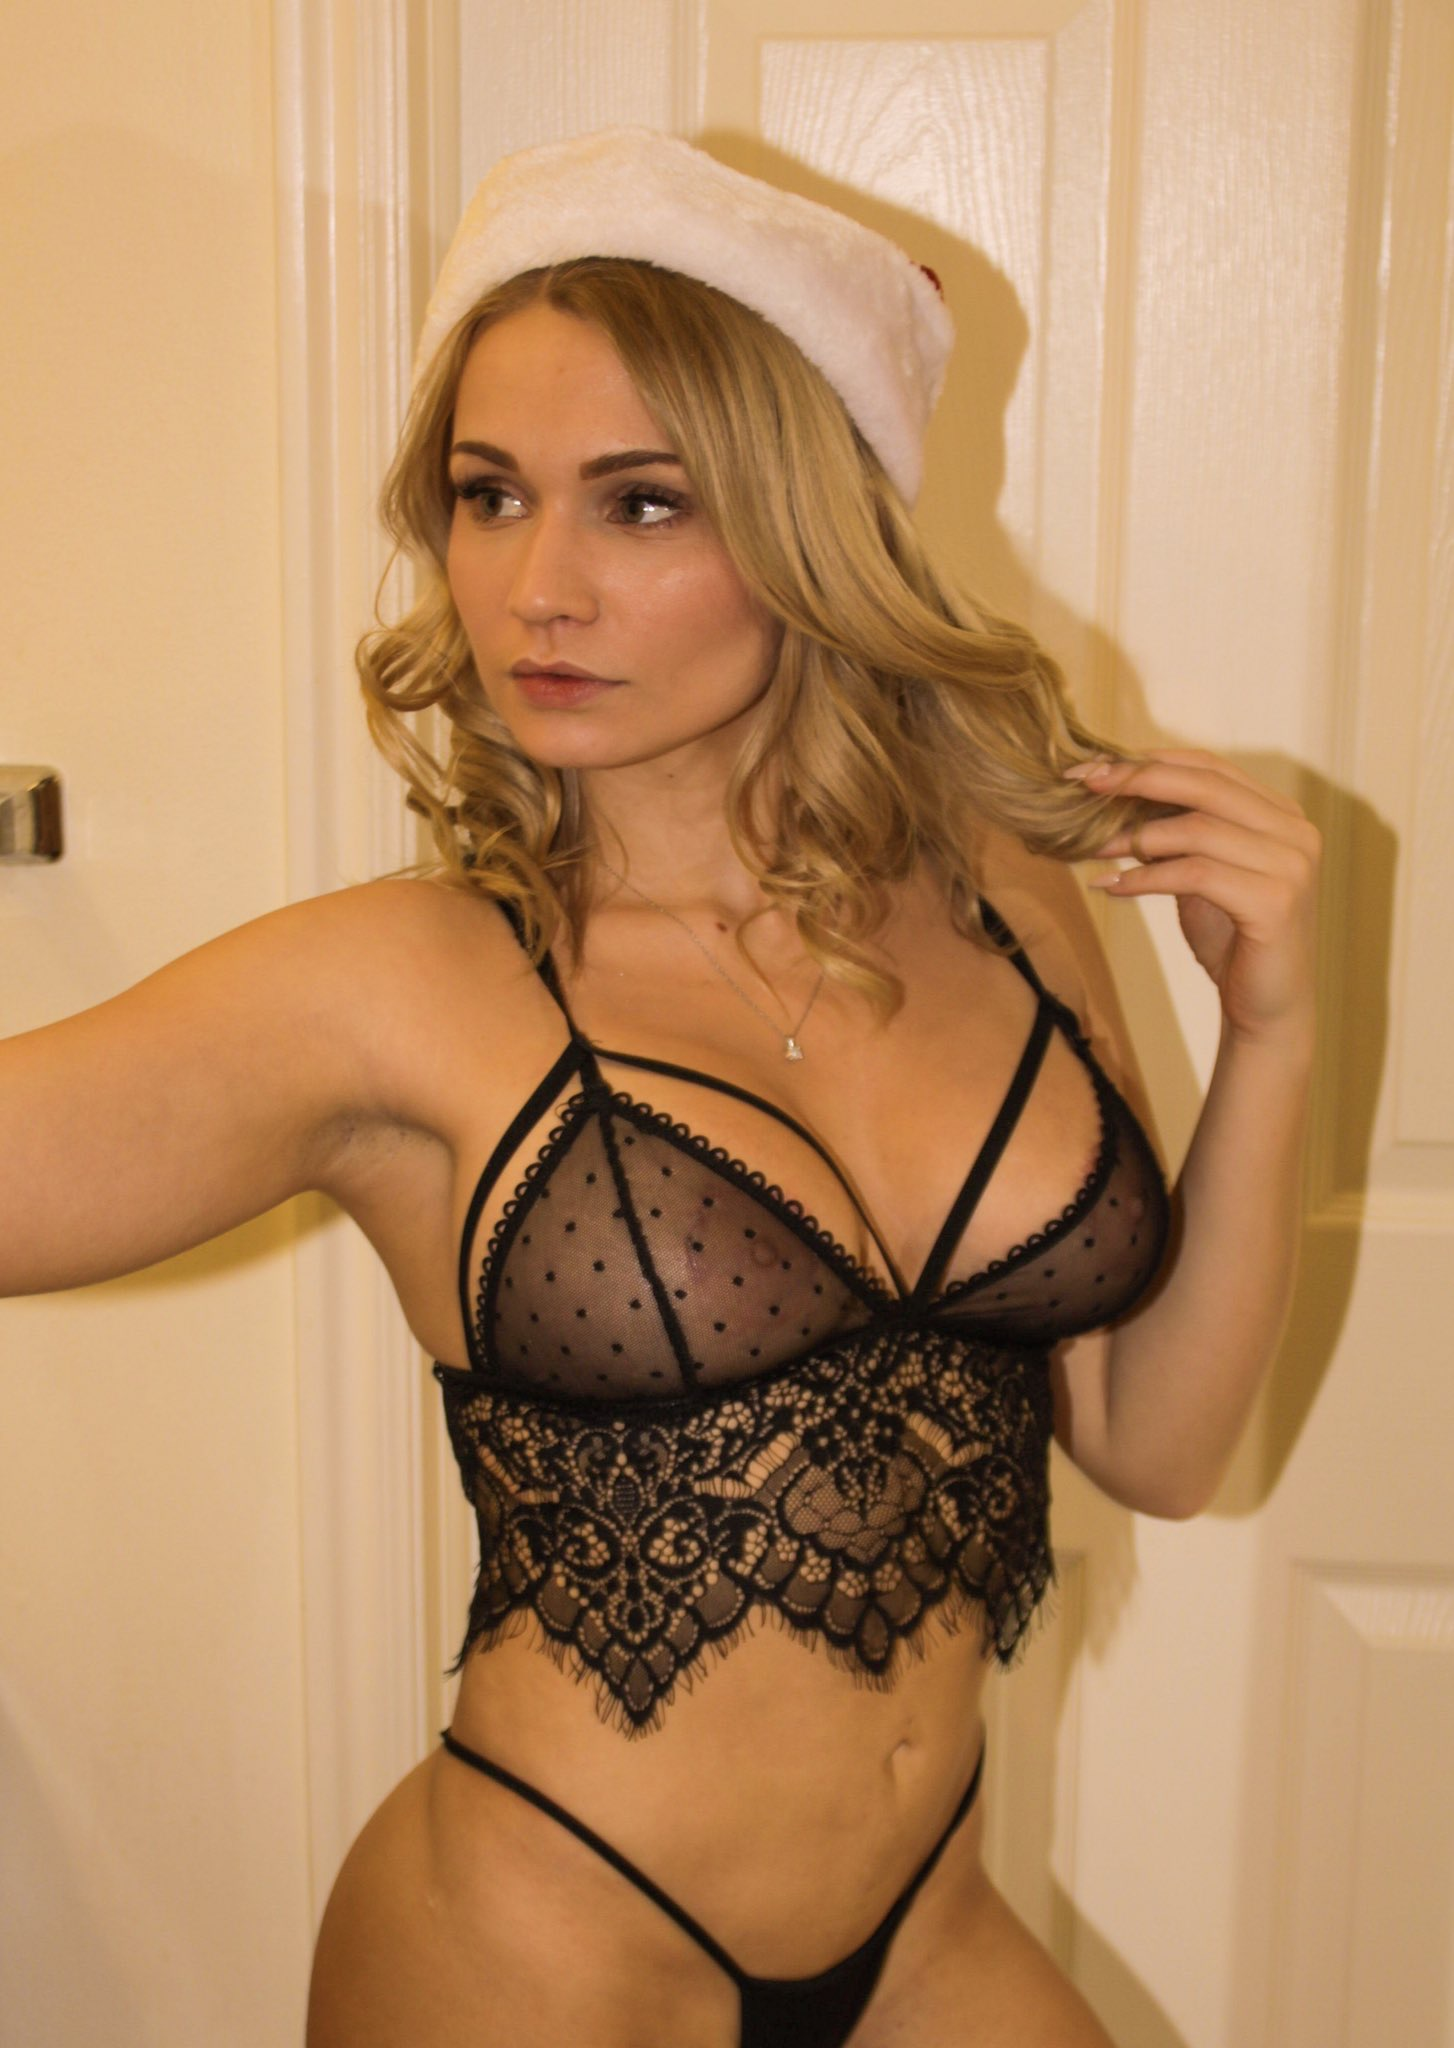 Beauty youtuber in black lingerie looking sexy